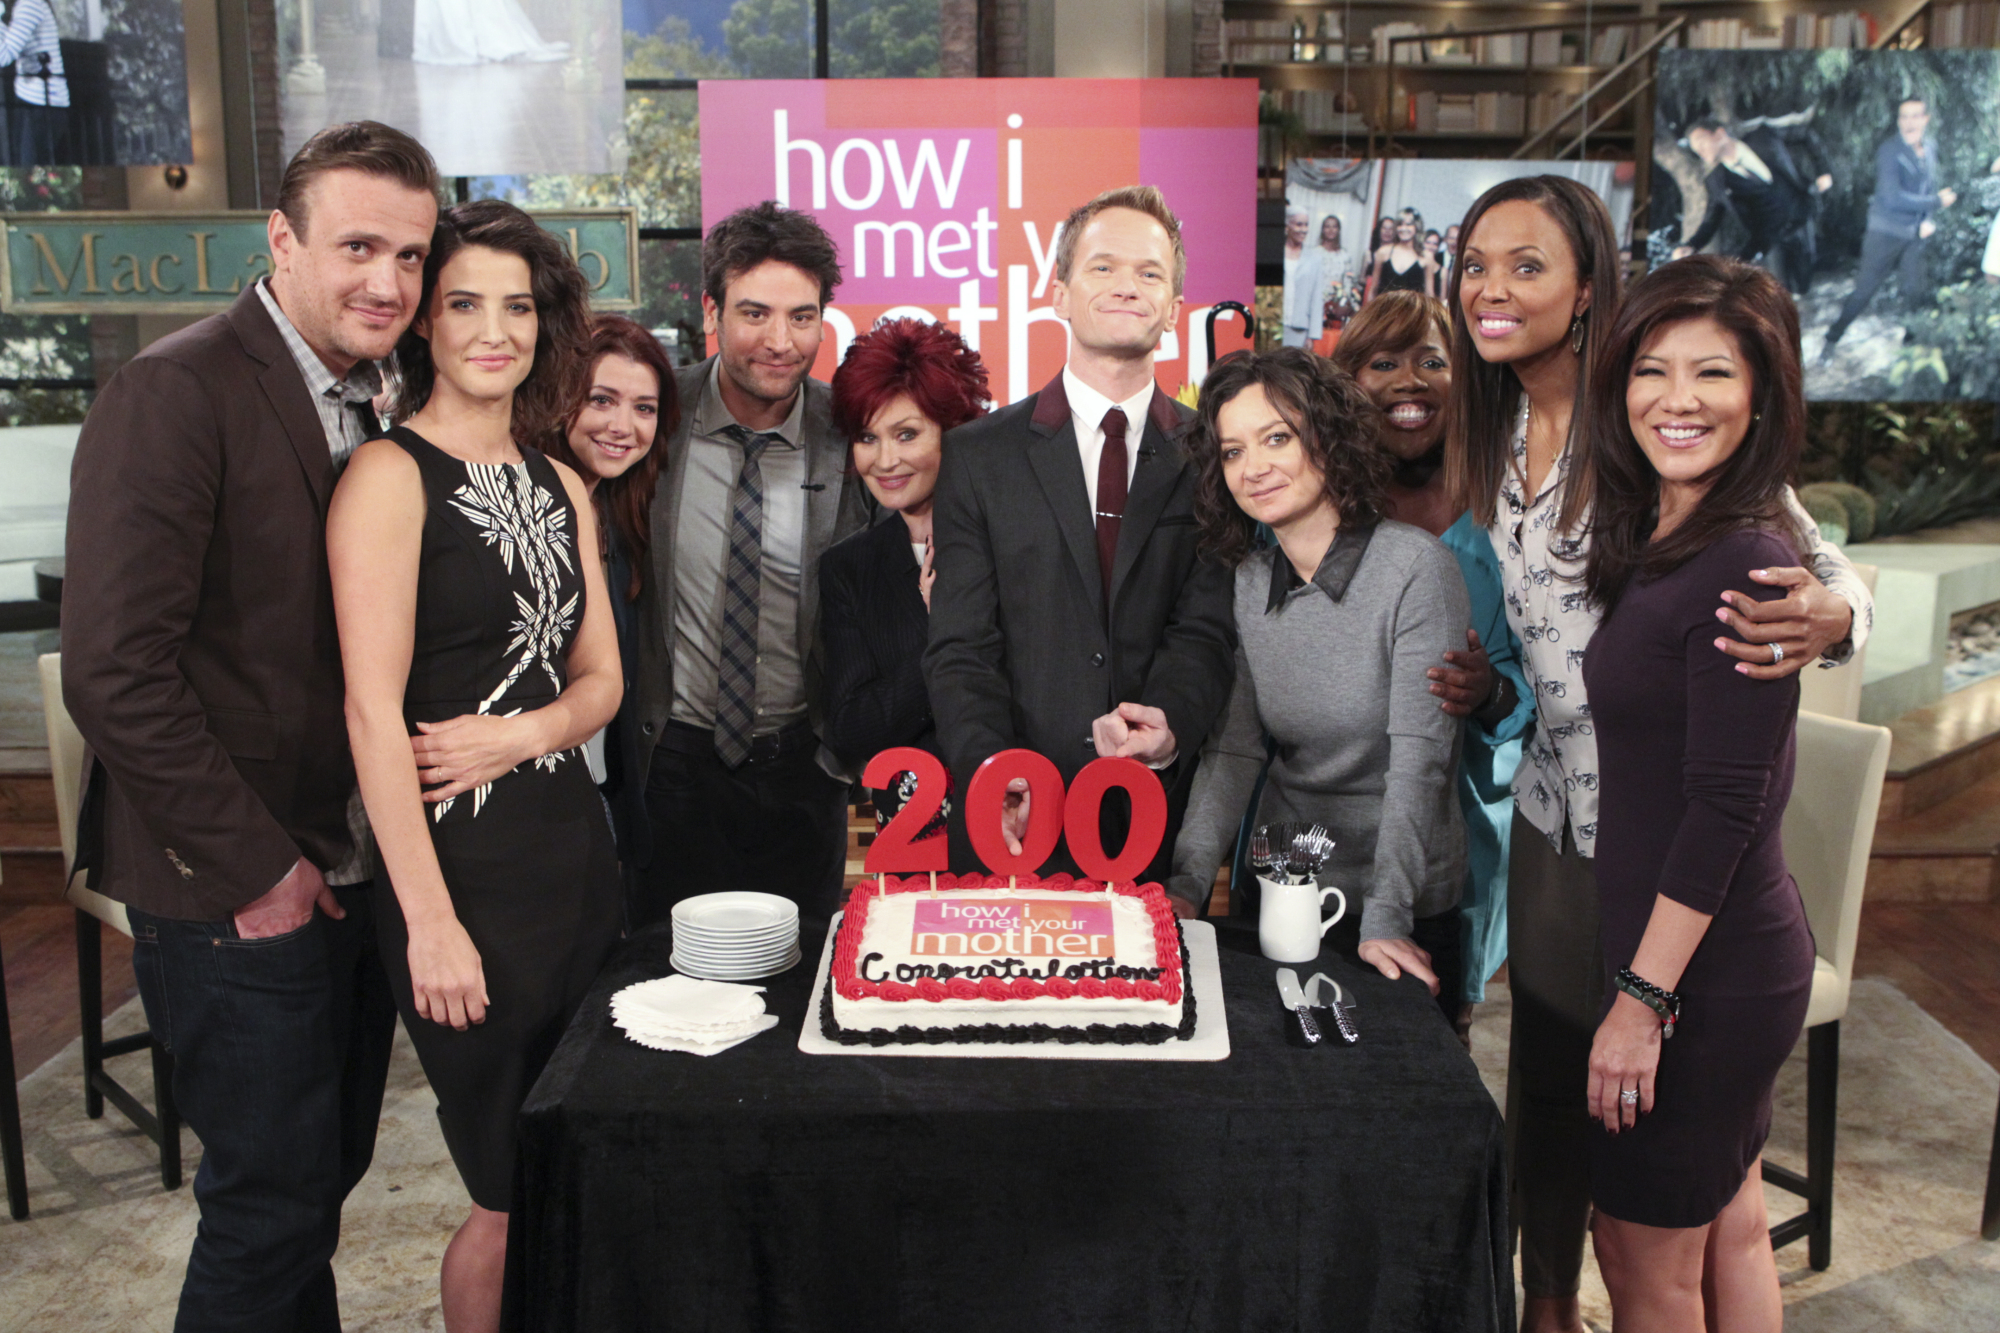 18. Jason Segel, Cobie Smulders, Alyson Hannigan, Josh Radnor, and Neil Patrick Harris - How I Met Your Mother